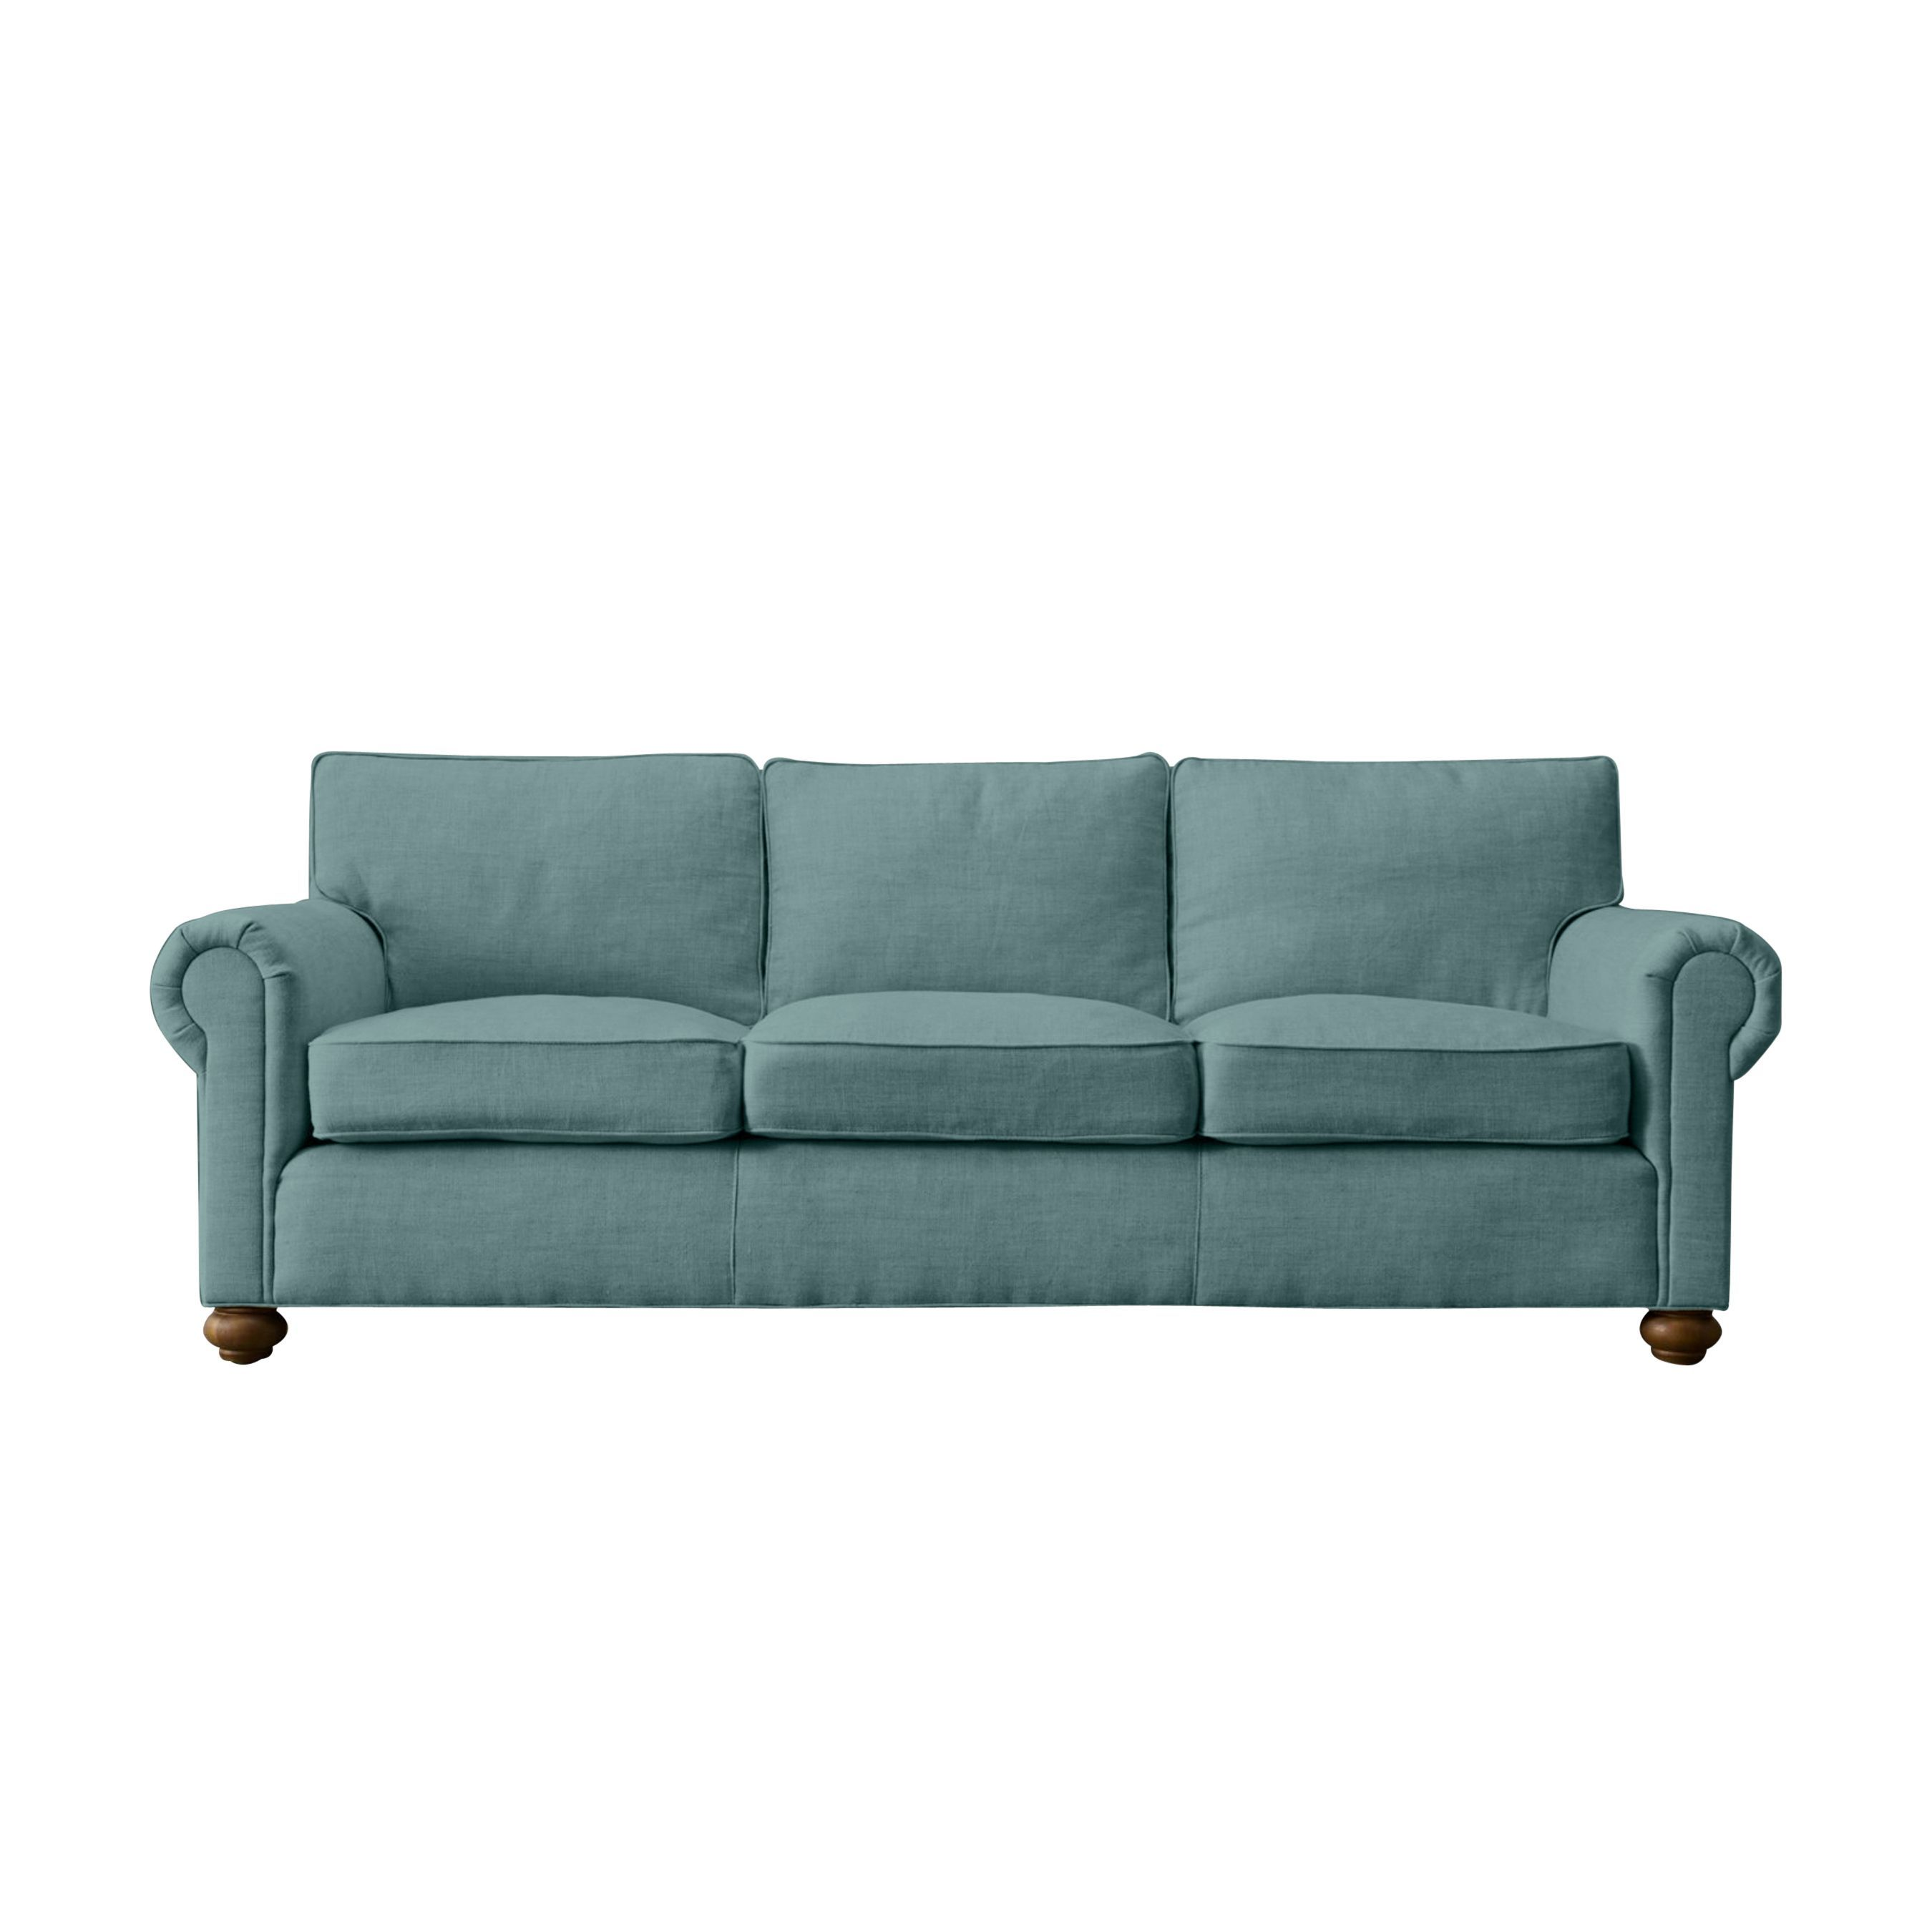 TAG by Tandem Arbor Laguna Linen Bushwick Made to Order Sofa (